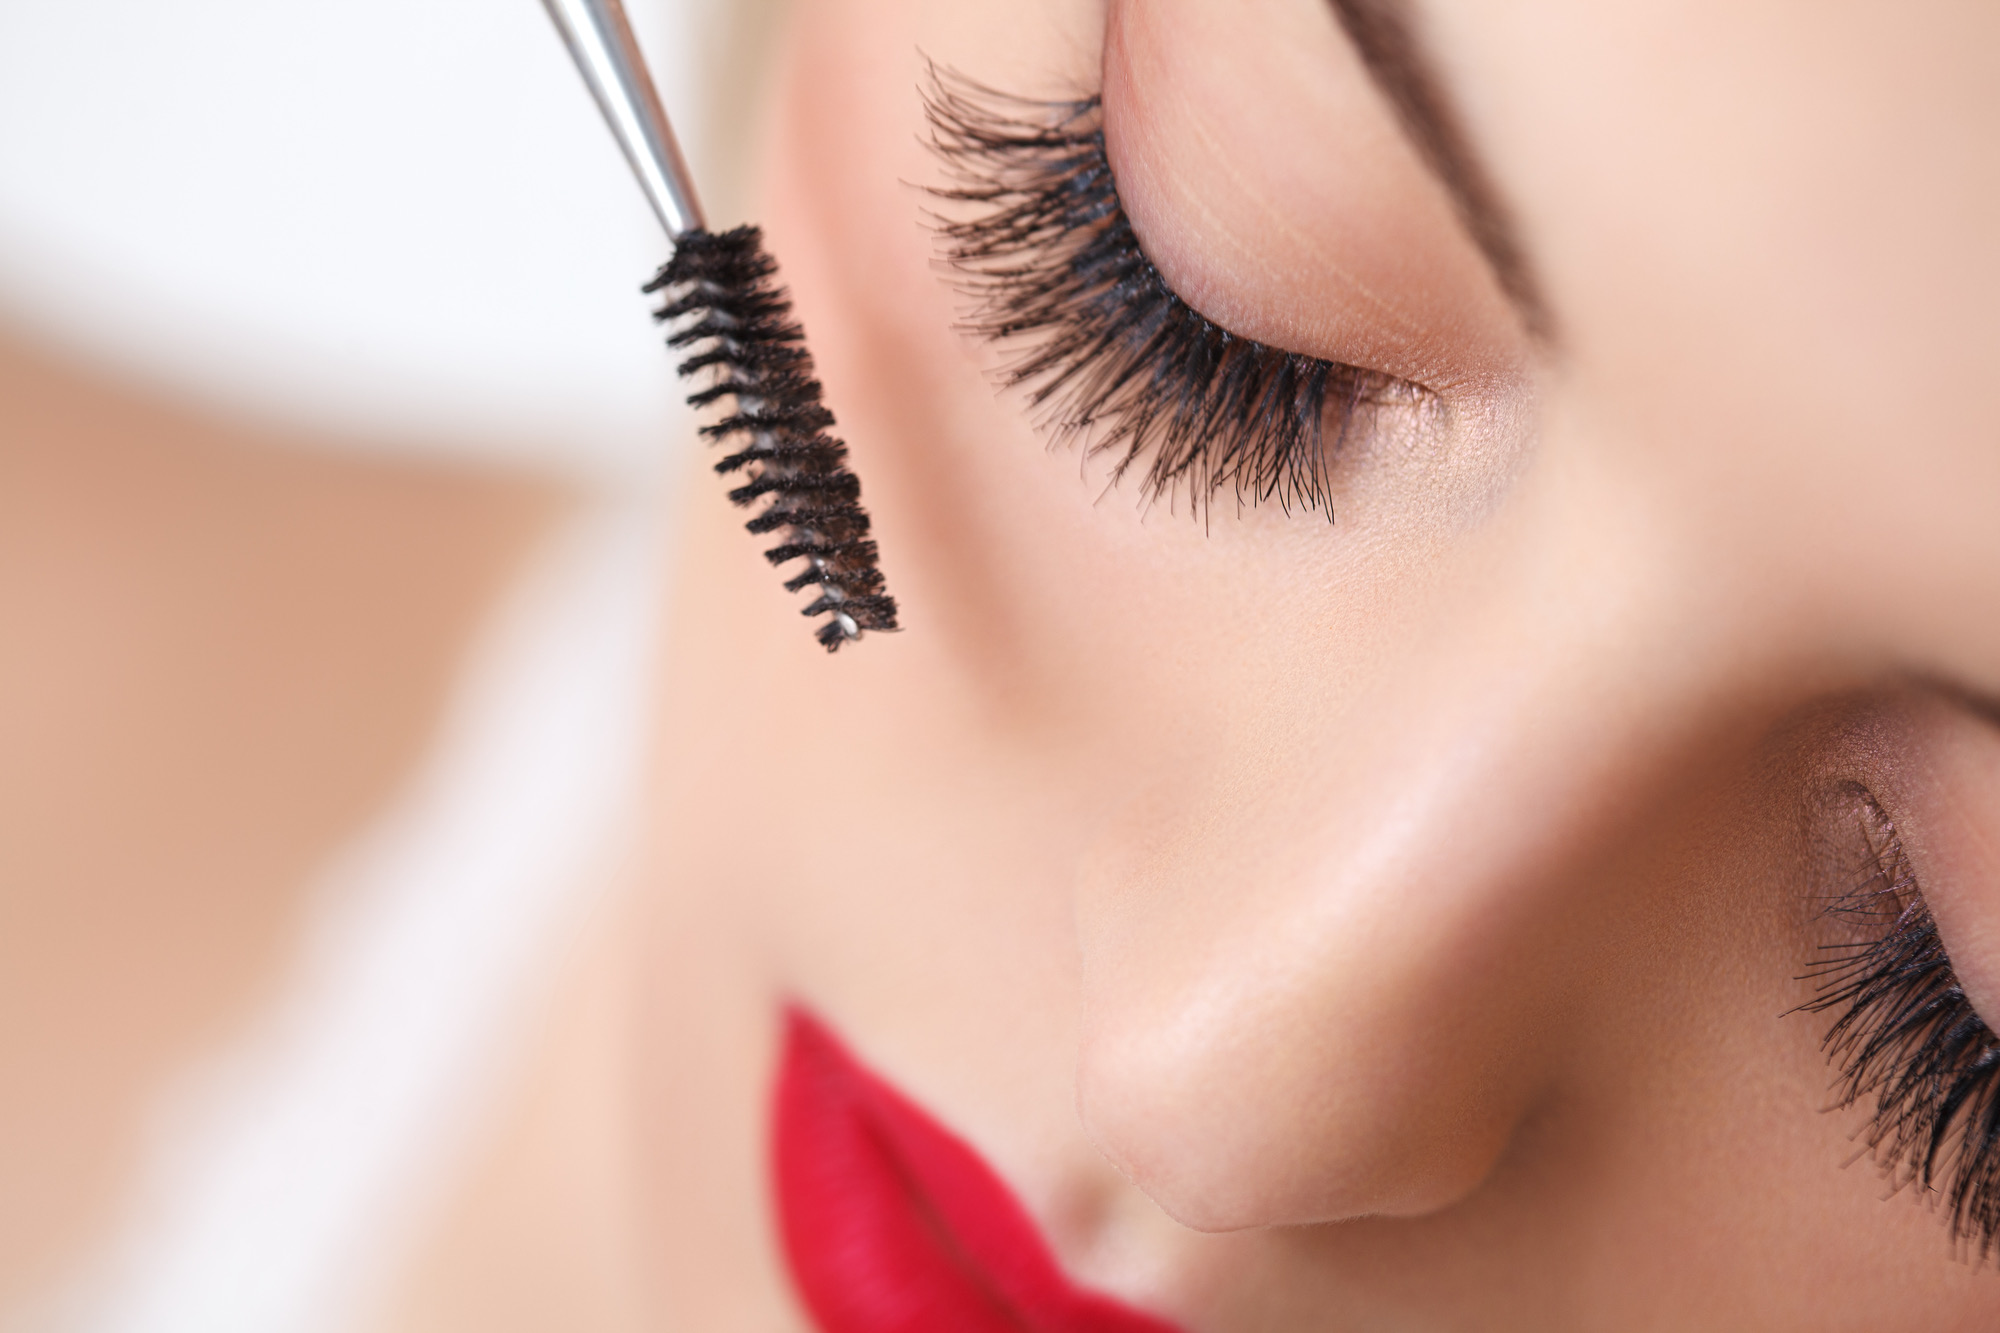 How to Take Care of Eyelash Extensions